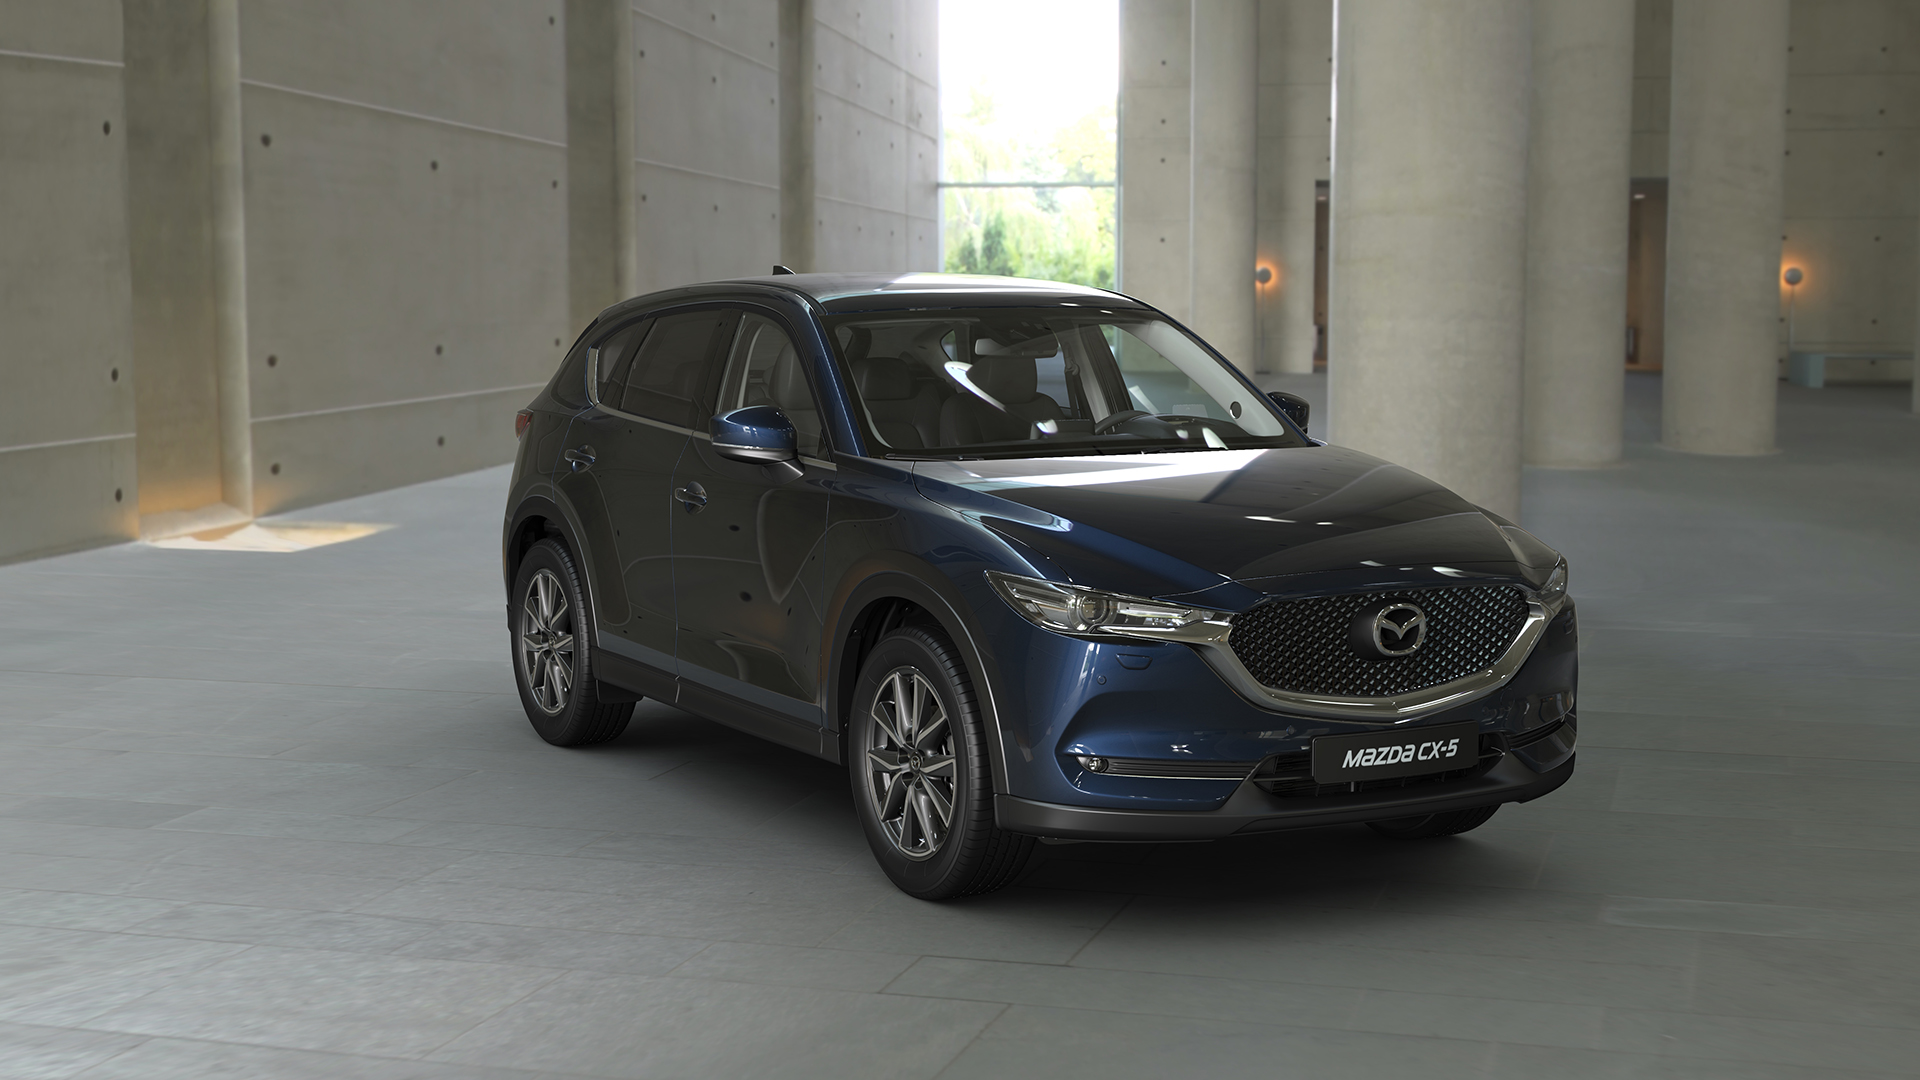 mazda cx 5 wint test autoweek mazda blog. Black Bedroom Furniture Sets. Home Design Ideas